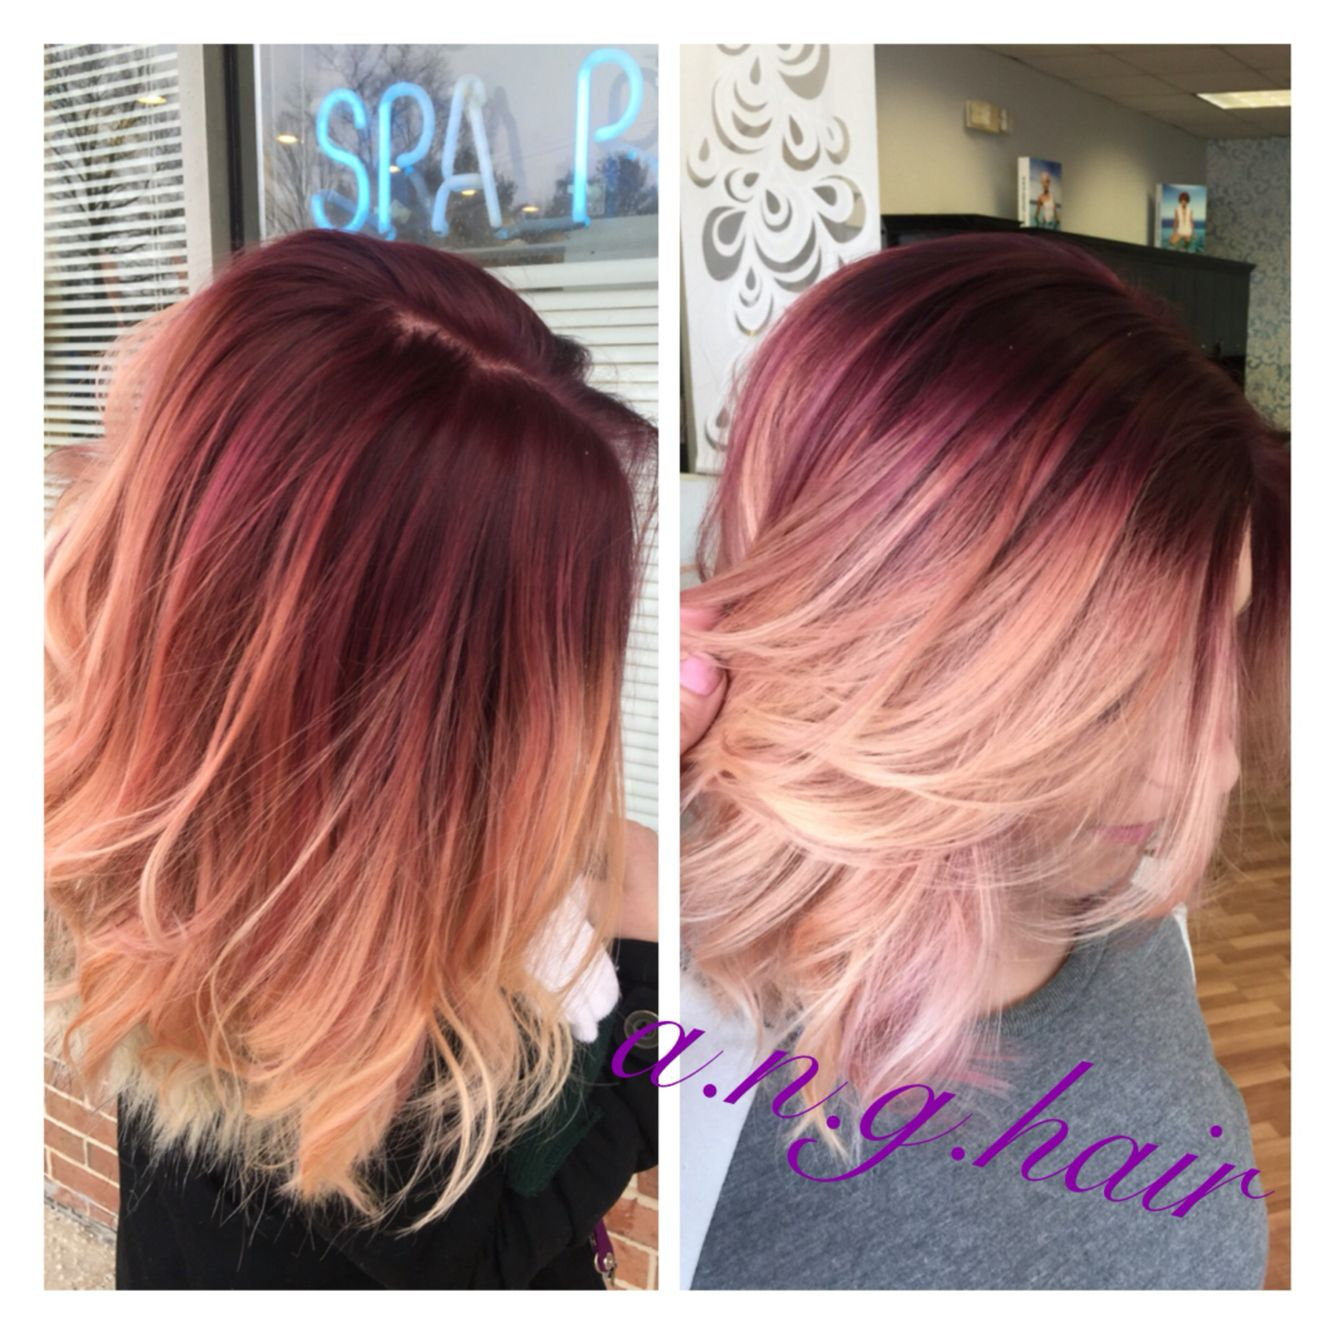 Violet base with rose gold mid shaft and balayage blonde throughout